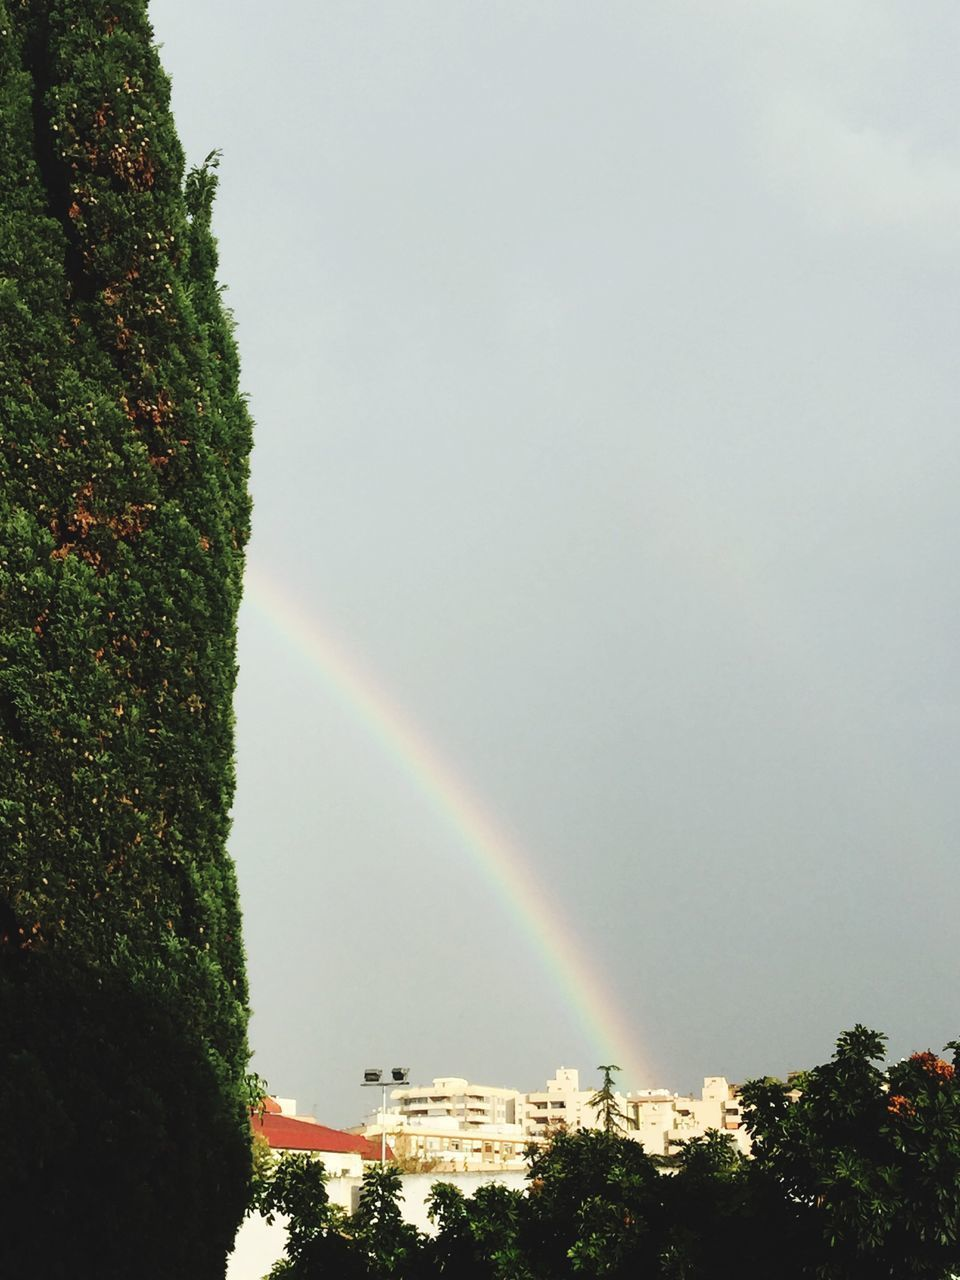 LOW ANGLE VIEW OF RAINBOW OVER TREES AND PLANTS